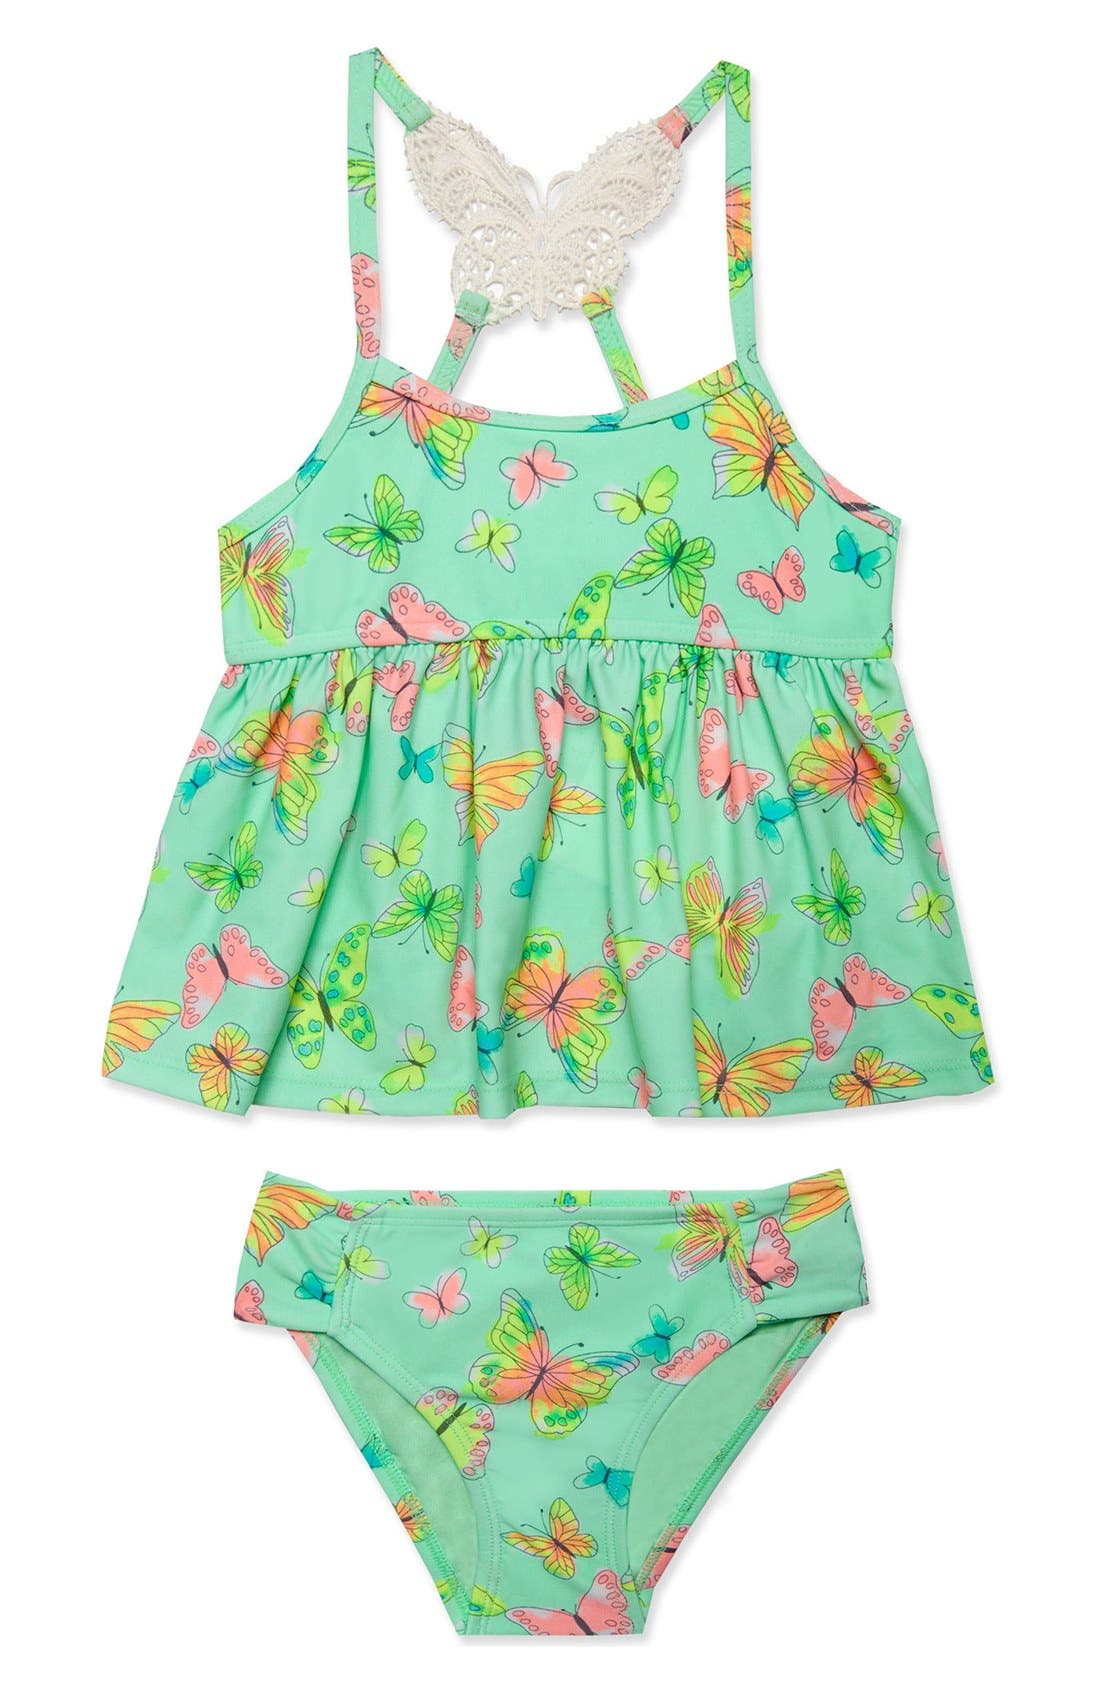 'Butterfly' Two-Piece Tankini Swimsuit,                         Main,                         color, 332